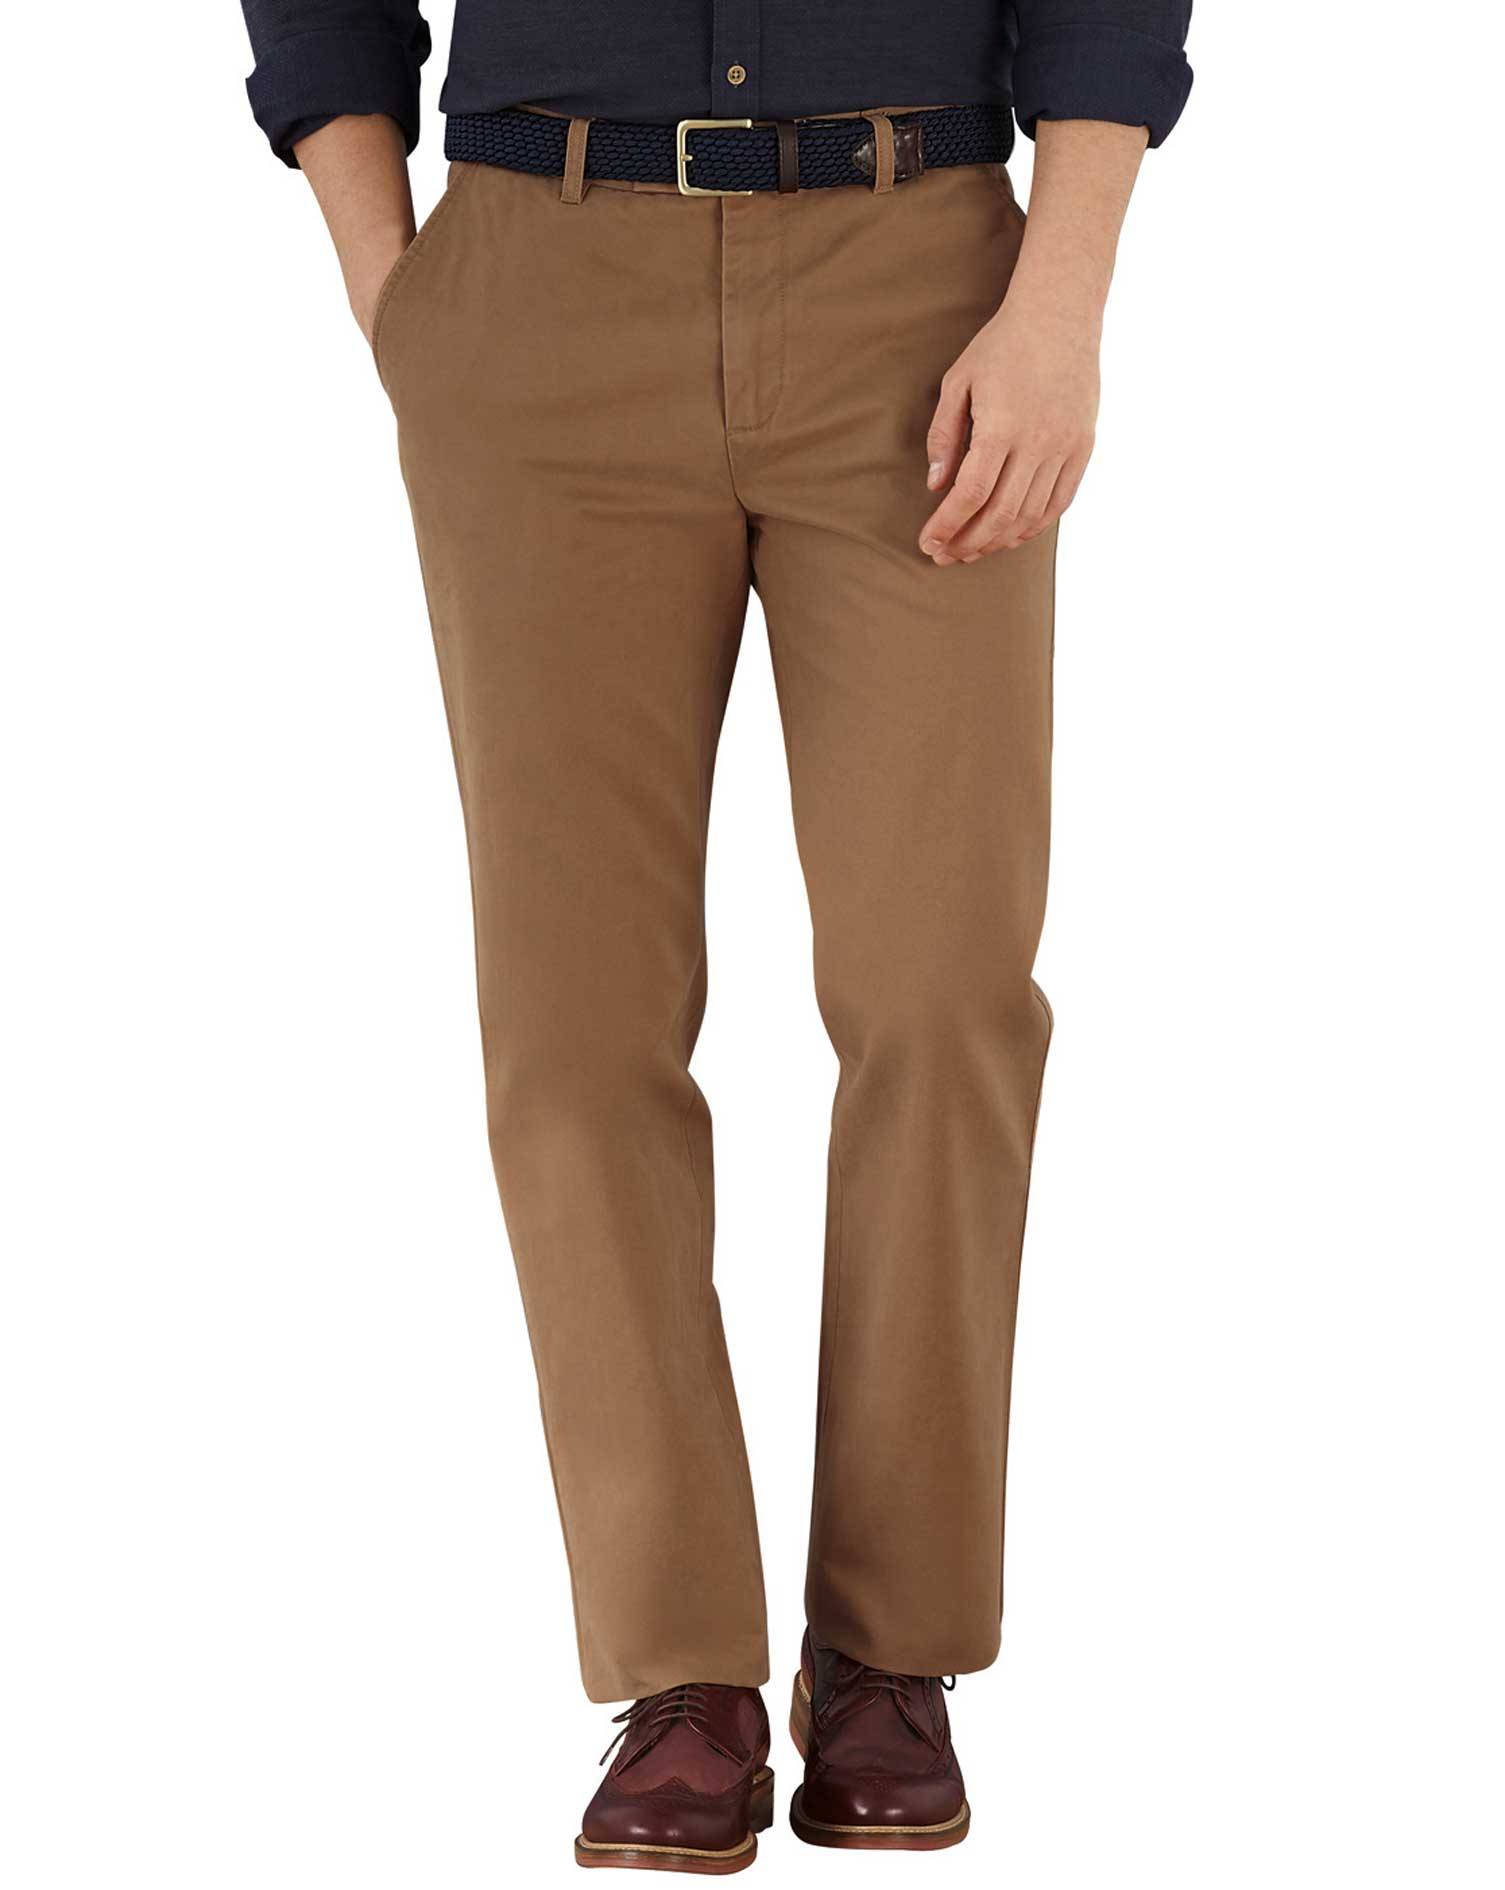 Camel Slim Fit Flat Front Cotton Chino Trousers Size W42 L30 by Charles Tyrwhitt